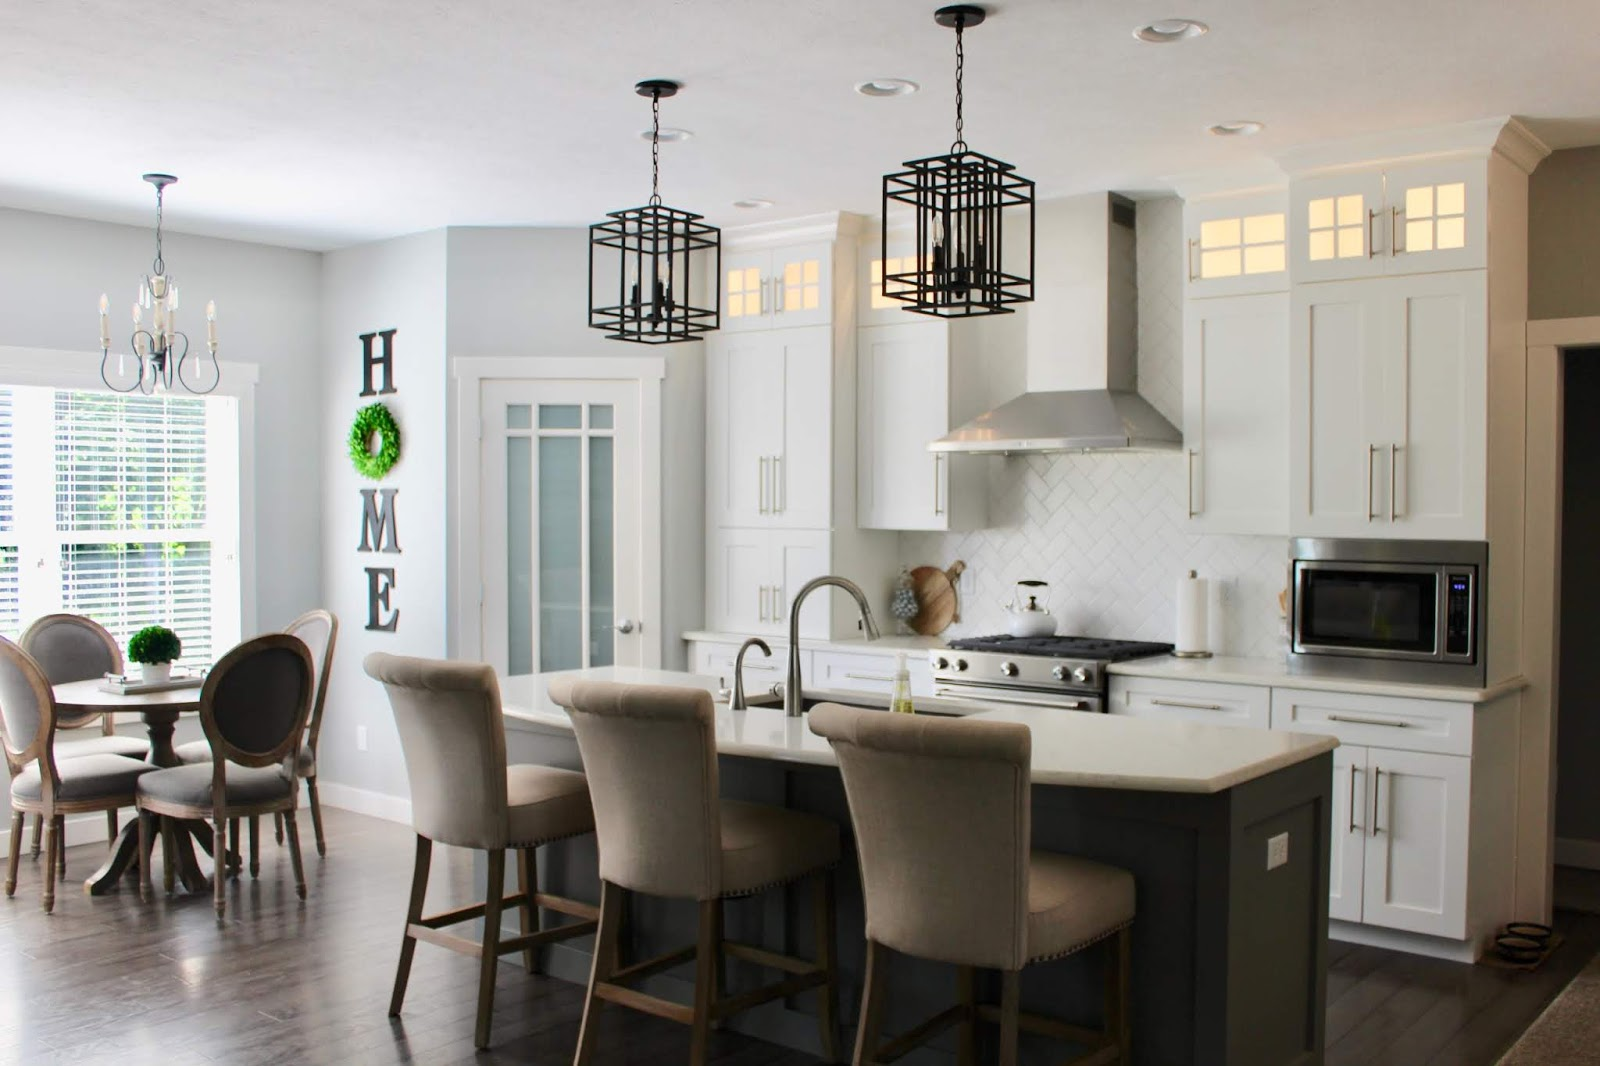 This beautiful open floor plan and gorgeous kitchen is just part of a home tour featuring the home of Andrea at Living on Cloud Nine. Come see this home tour at Poofing the Pillows